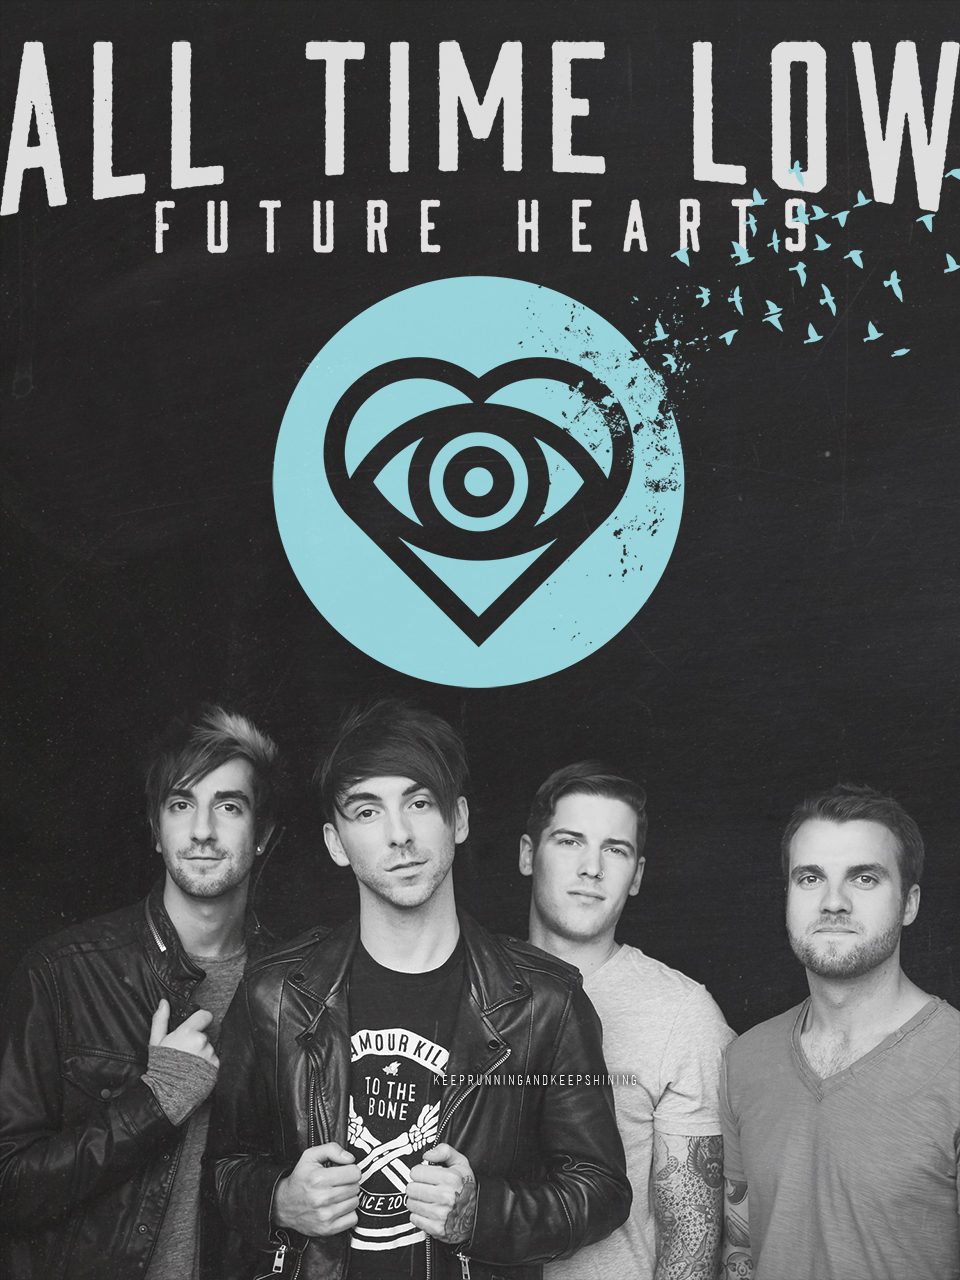 all time low logo wallpaper - photo #13